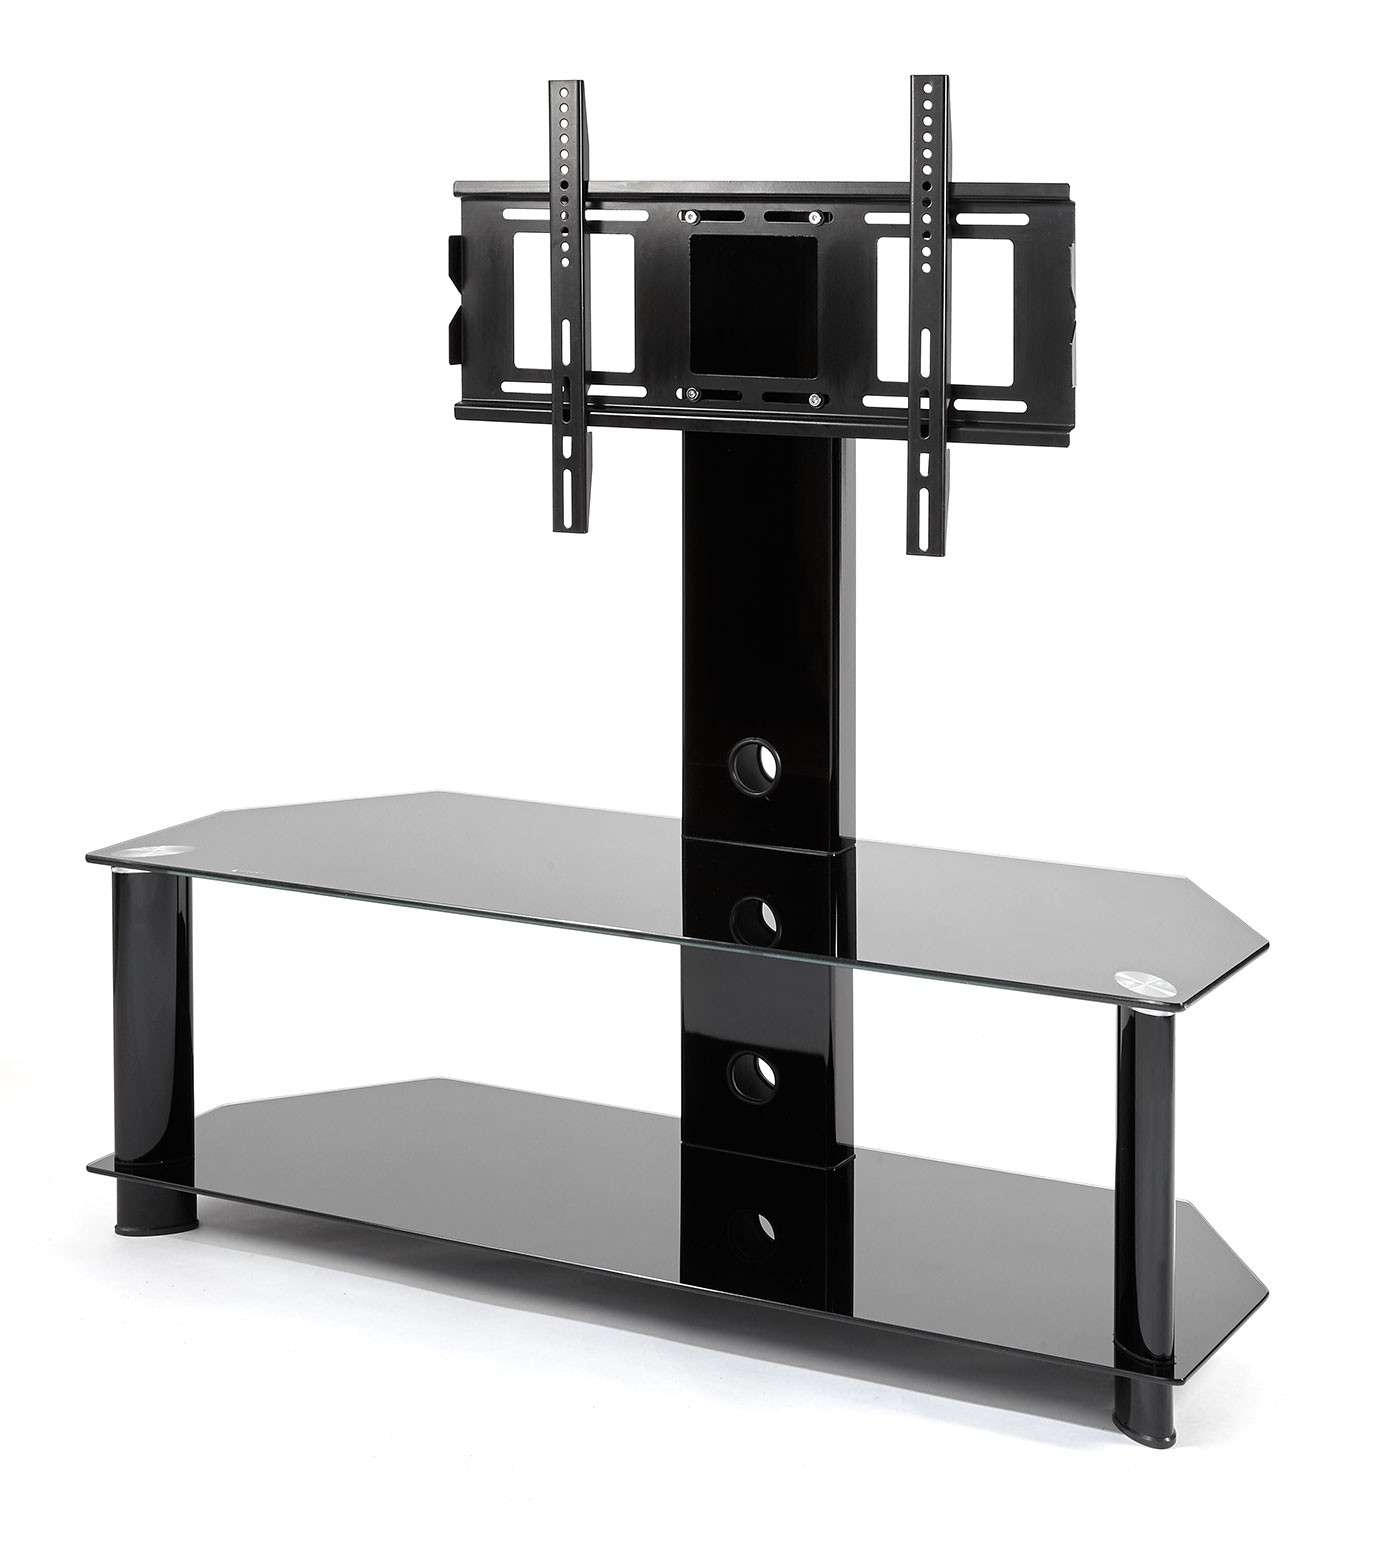 Black Glass Cantilever Tv Stand | Mmt Cb110/2 Inside Cantilever Glass Tv Stands (View 6 of 20)